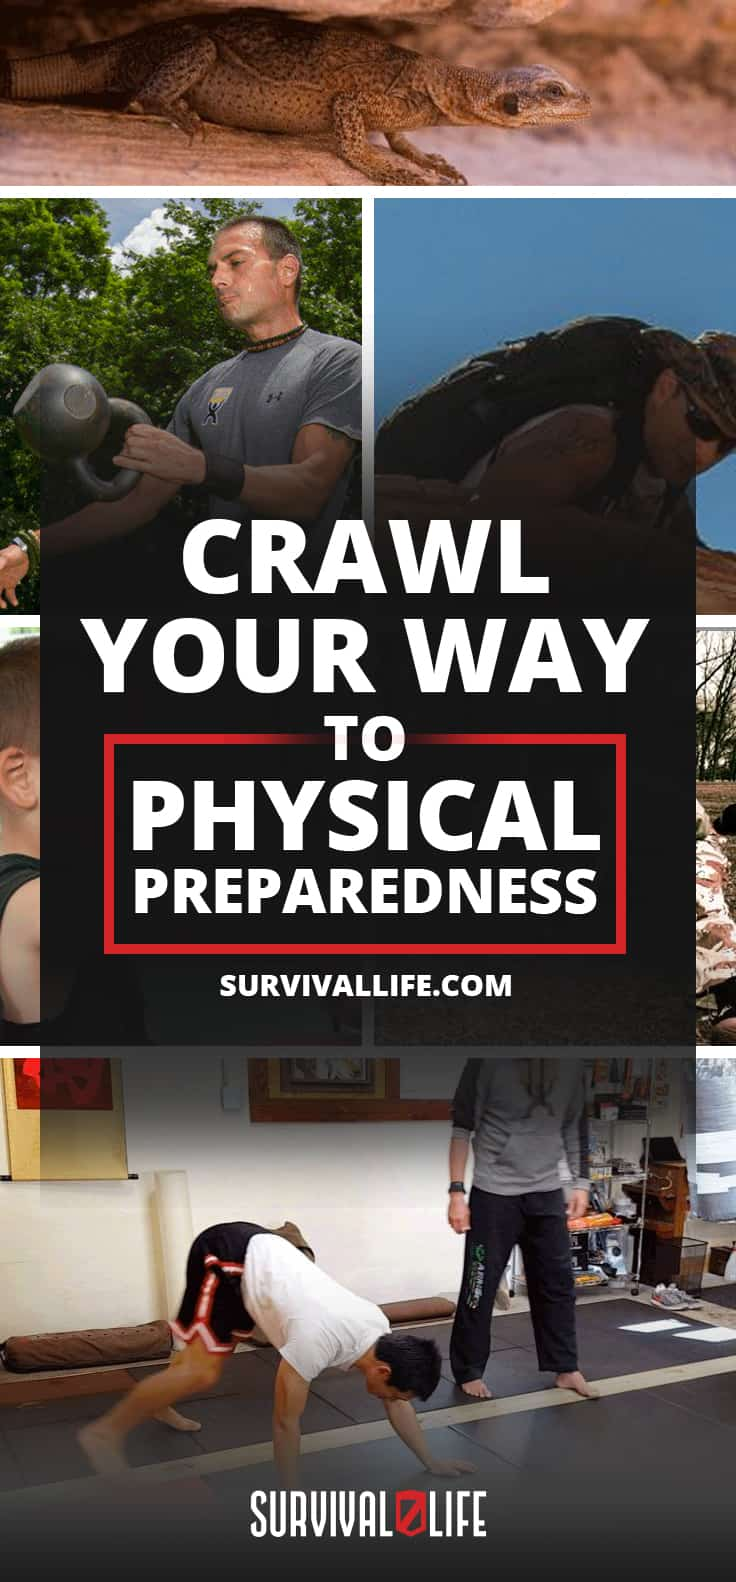 Crawl Your Way To Physical Preparedness [Survival Life]